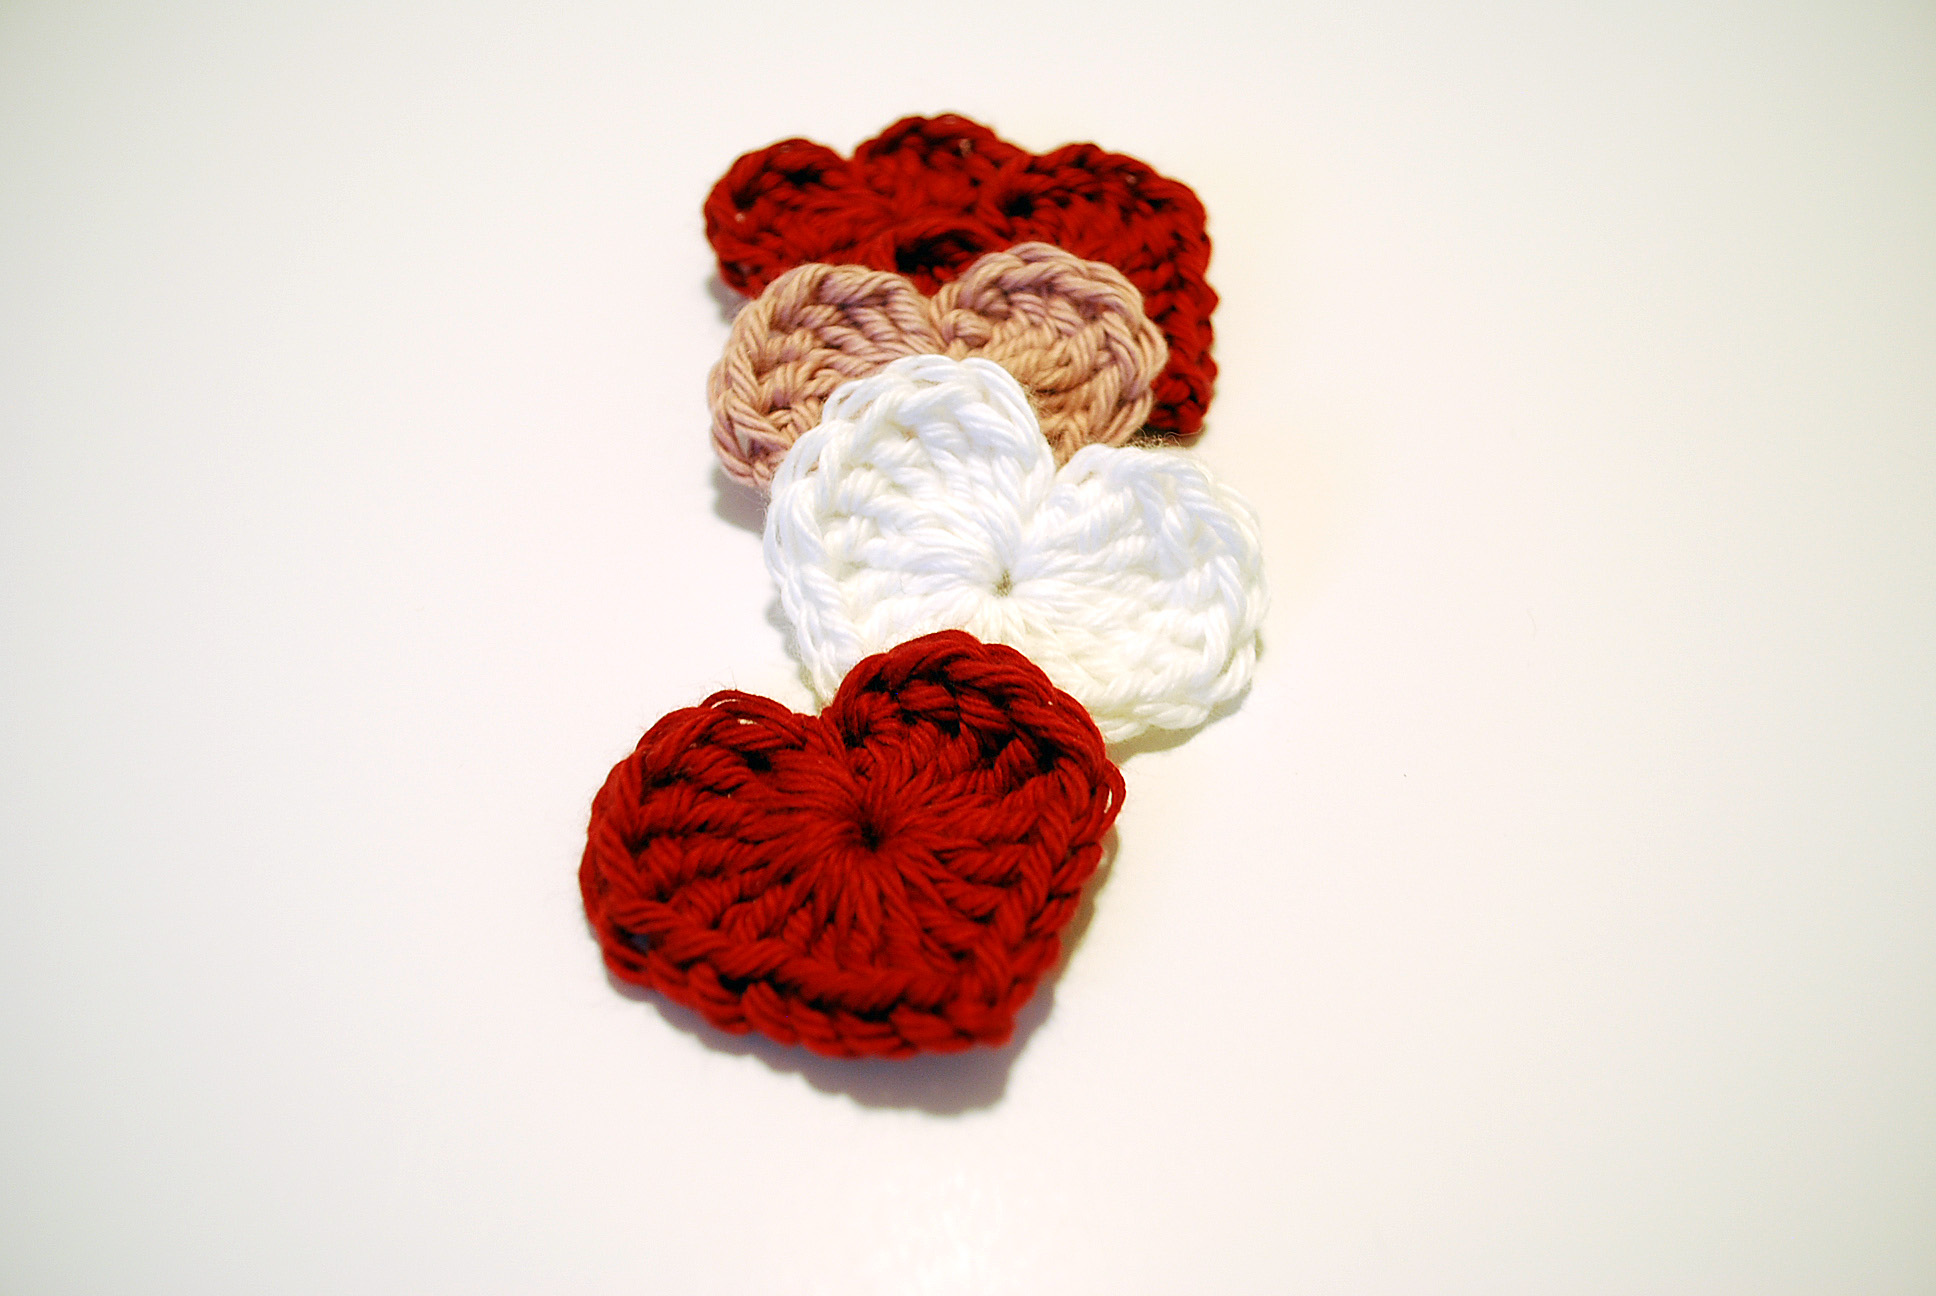 Crochet A Heart : Magic Heart: Free Pattern and Tutorial - B.hooked Crochet